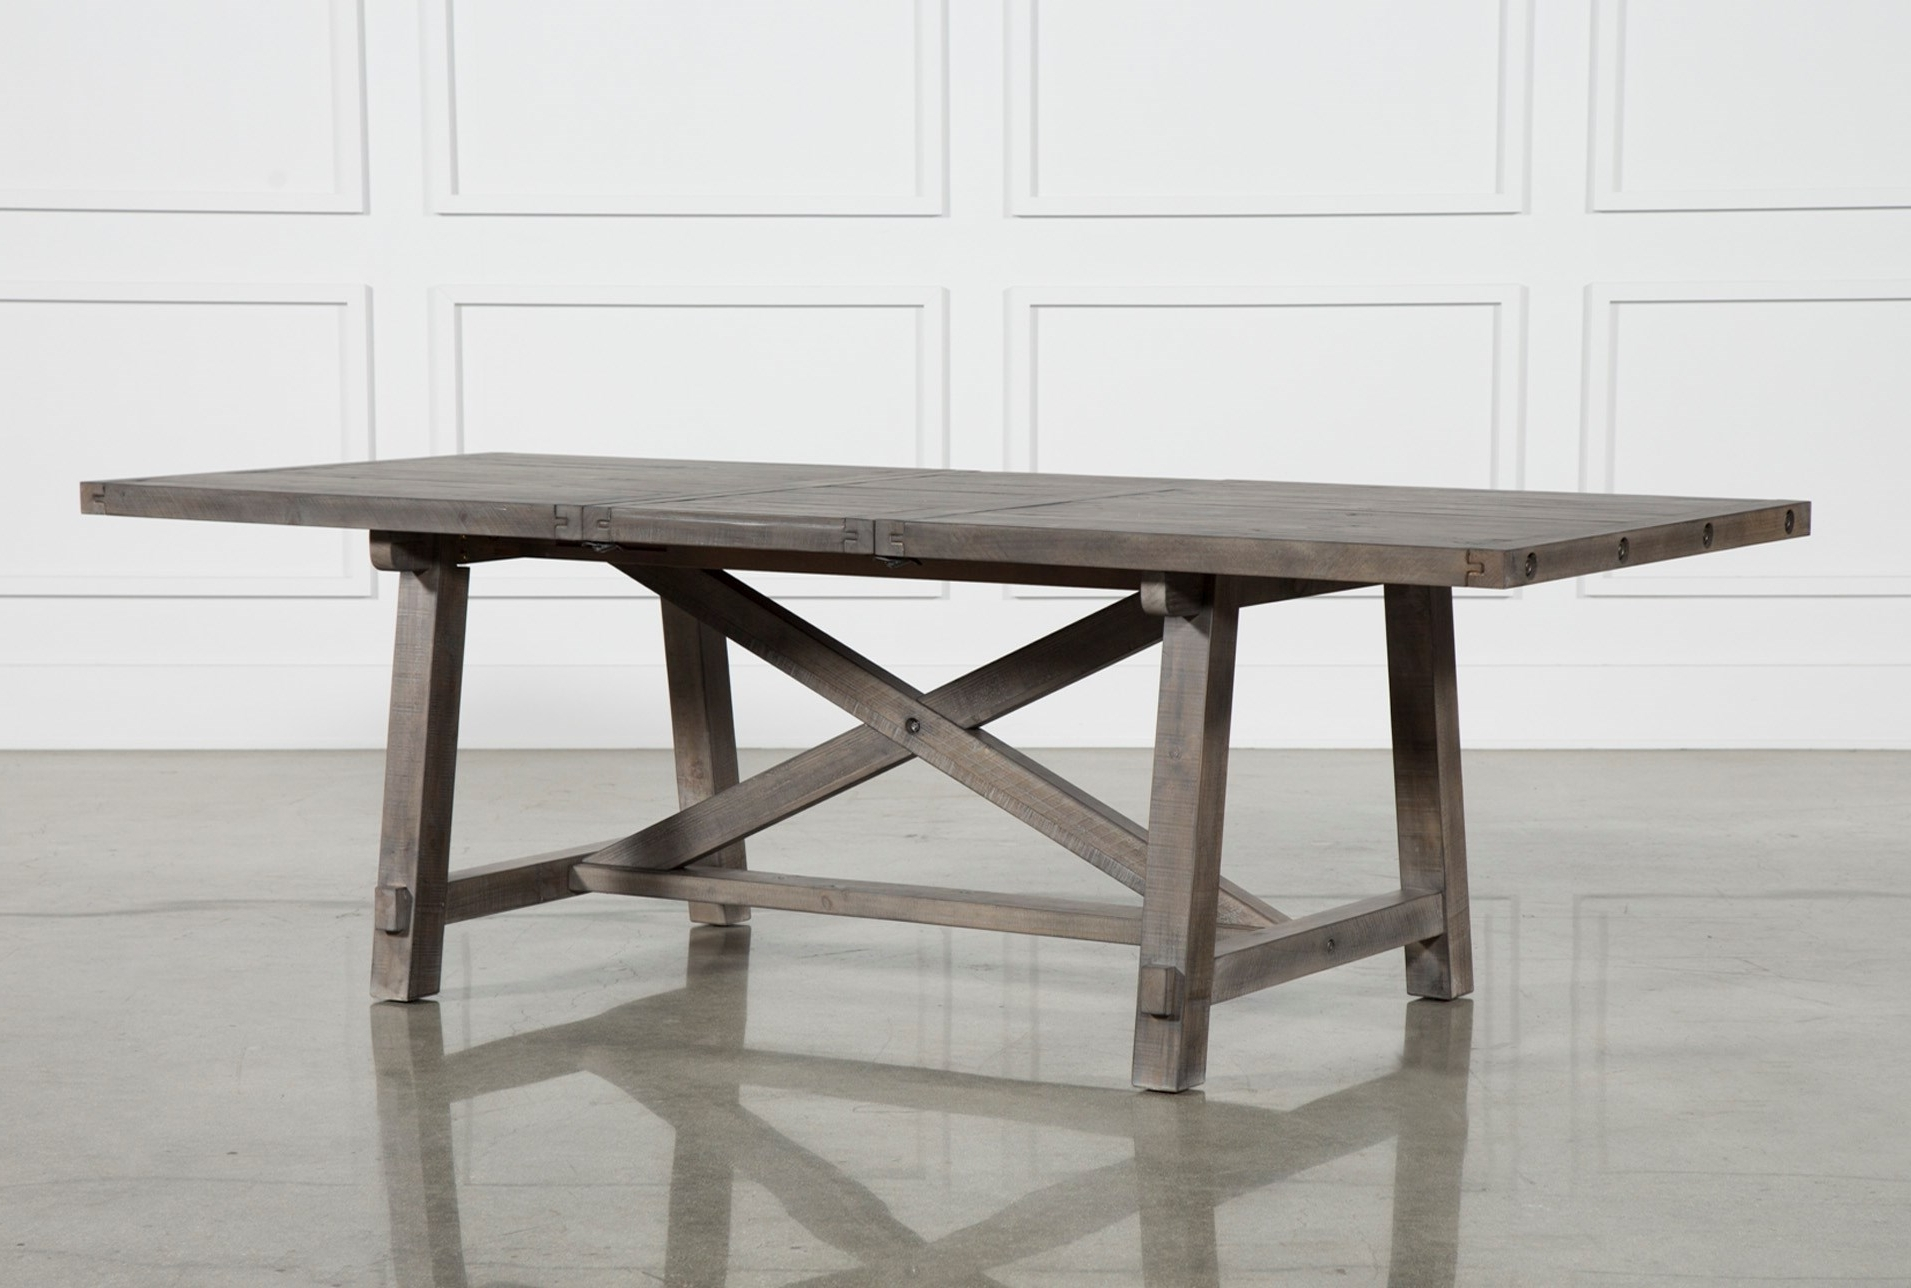 Norwood Rectangle Extension Dining Tables Regarding Well Liked Awesome Design Extension Dining Table – Just Another WordPress Site (View 8 of 25)